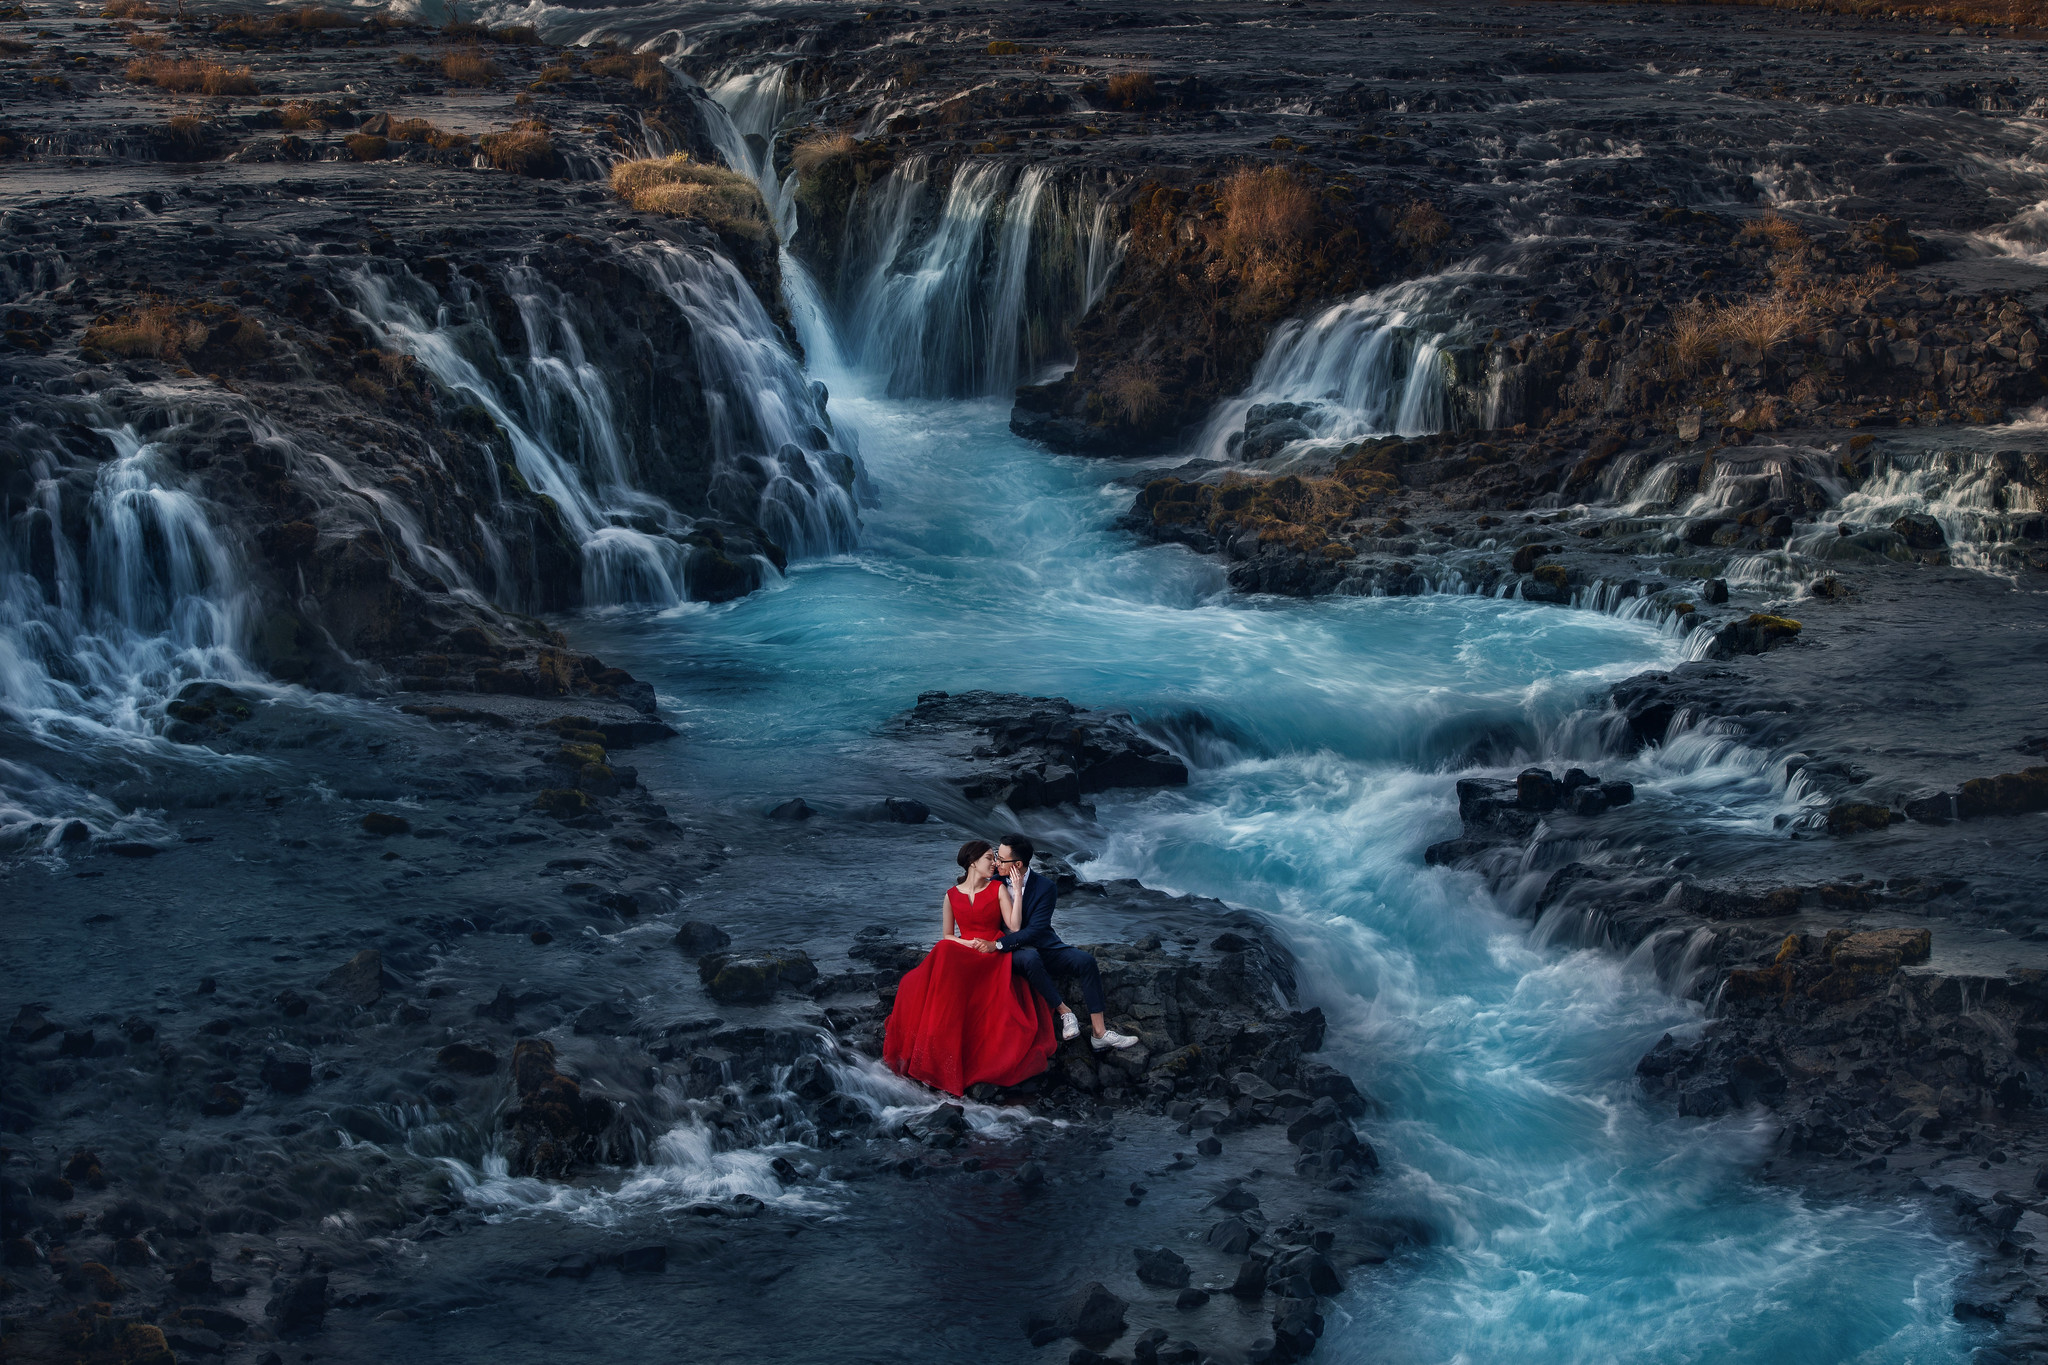 Donfer Photography, EASTERN WEDDING, 東法, 冰島婚紗, 最強冰島, Iceland, 海外婚紗, 藝術婚紗